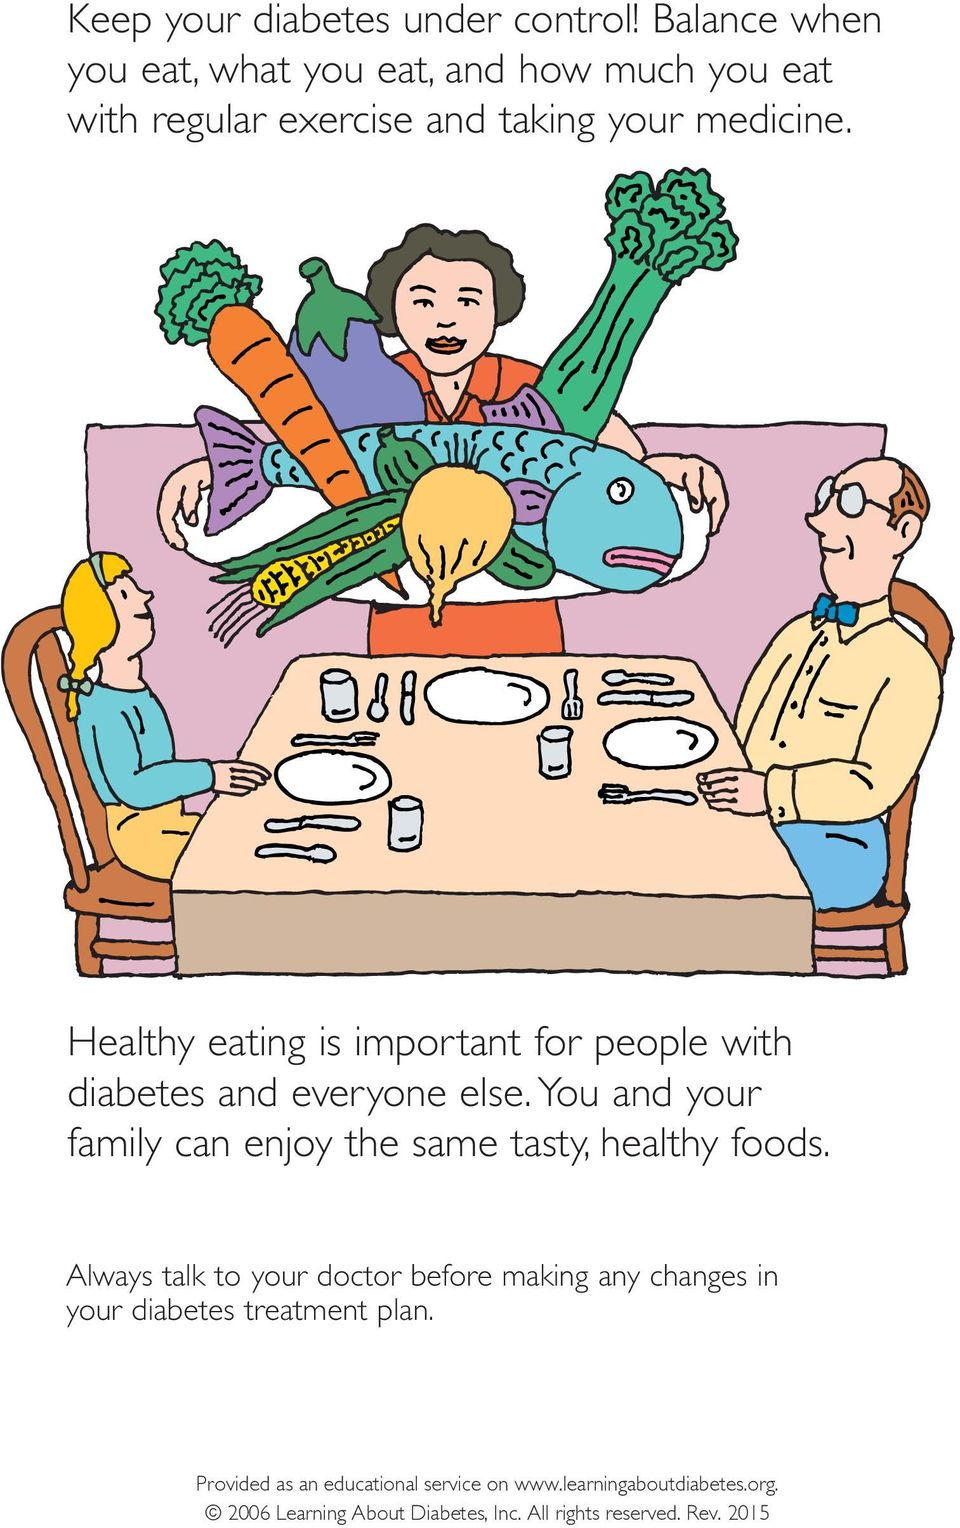 Healthy eating is important for people with diabetes and everyone else.